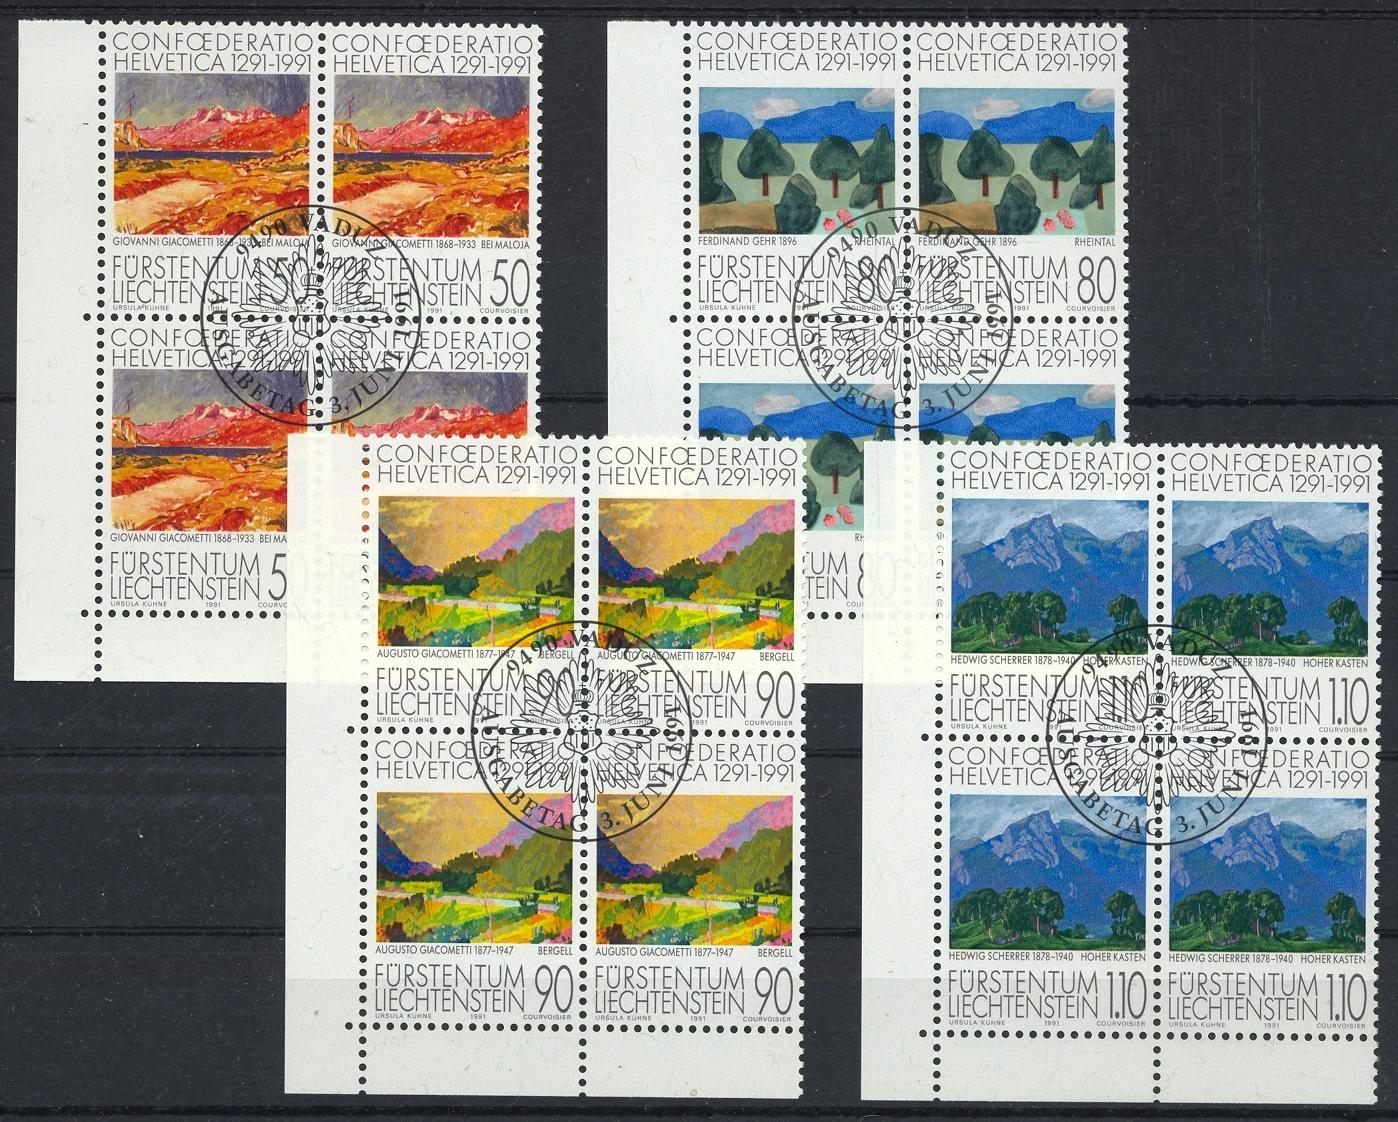 Stamps with Landscapes from Liechtenstein (image for product #032140)